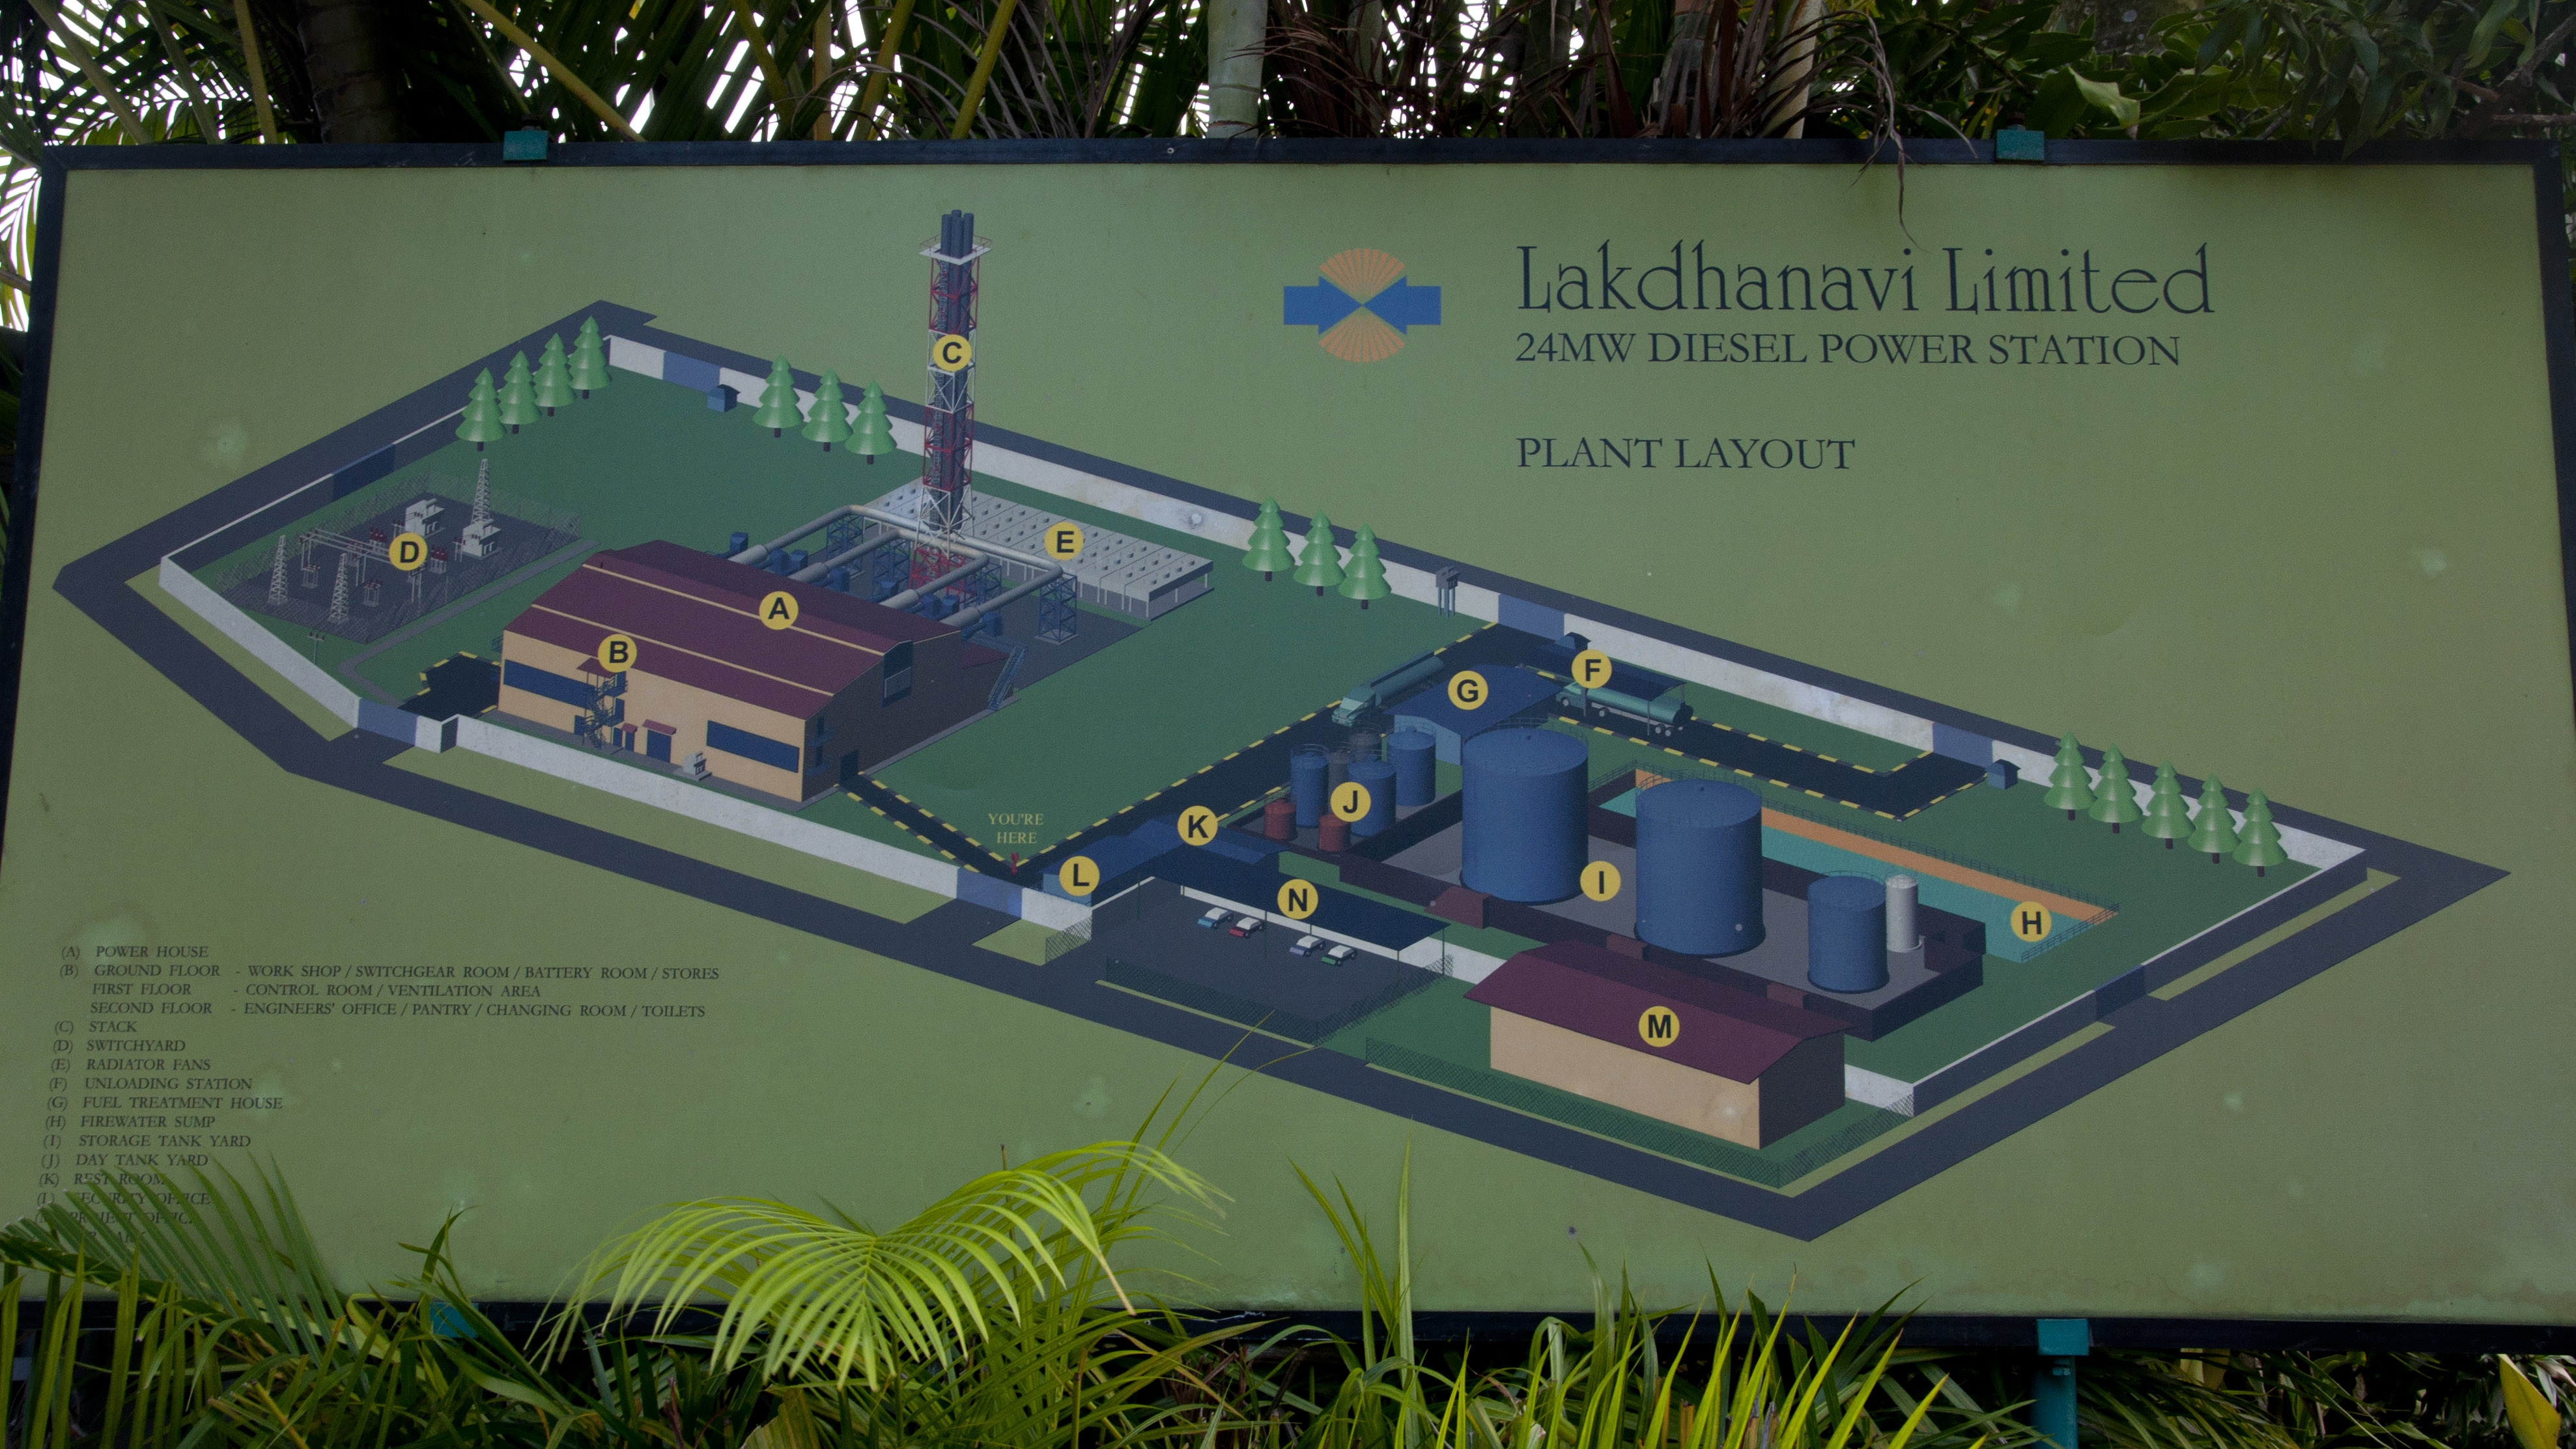 Local Lanka Transformers Private Limited Power Plant Engineering Layout 5 4 Mw Assupiniella Mini Hydro